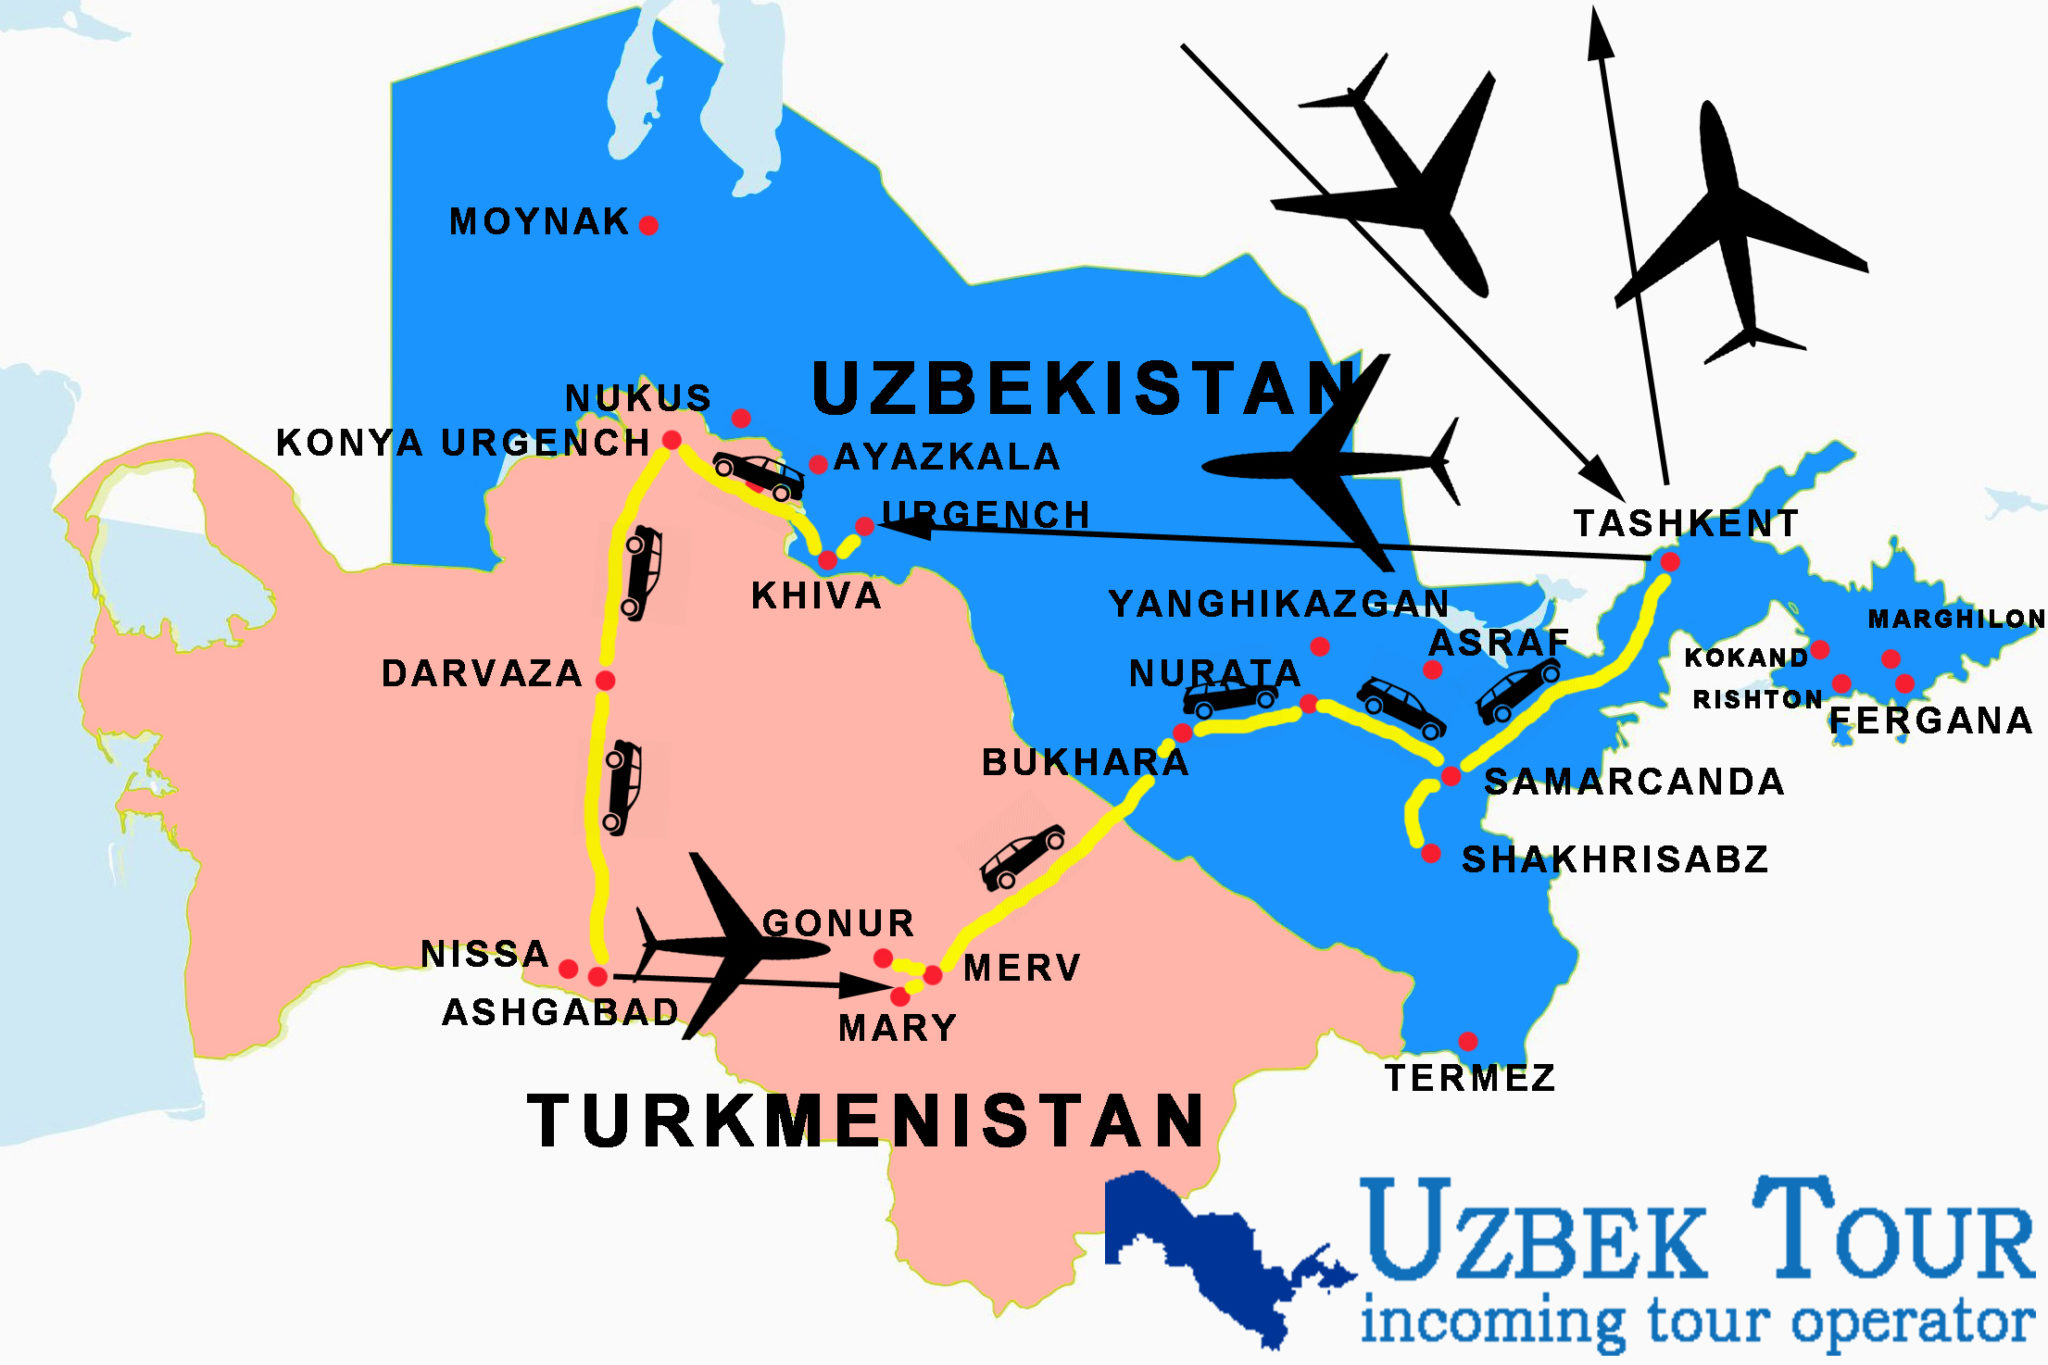 tour tu uzbekistan and turkmenistan